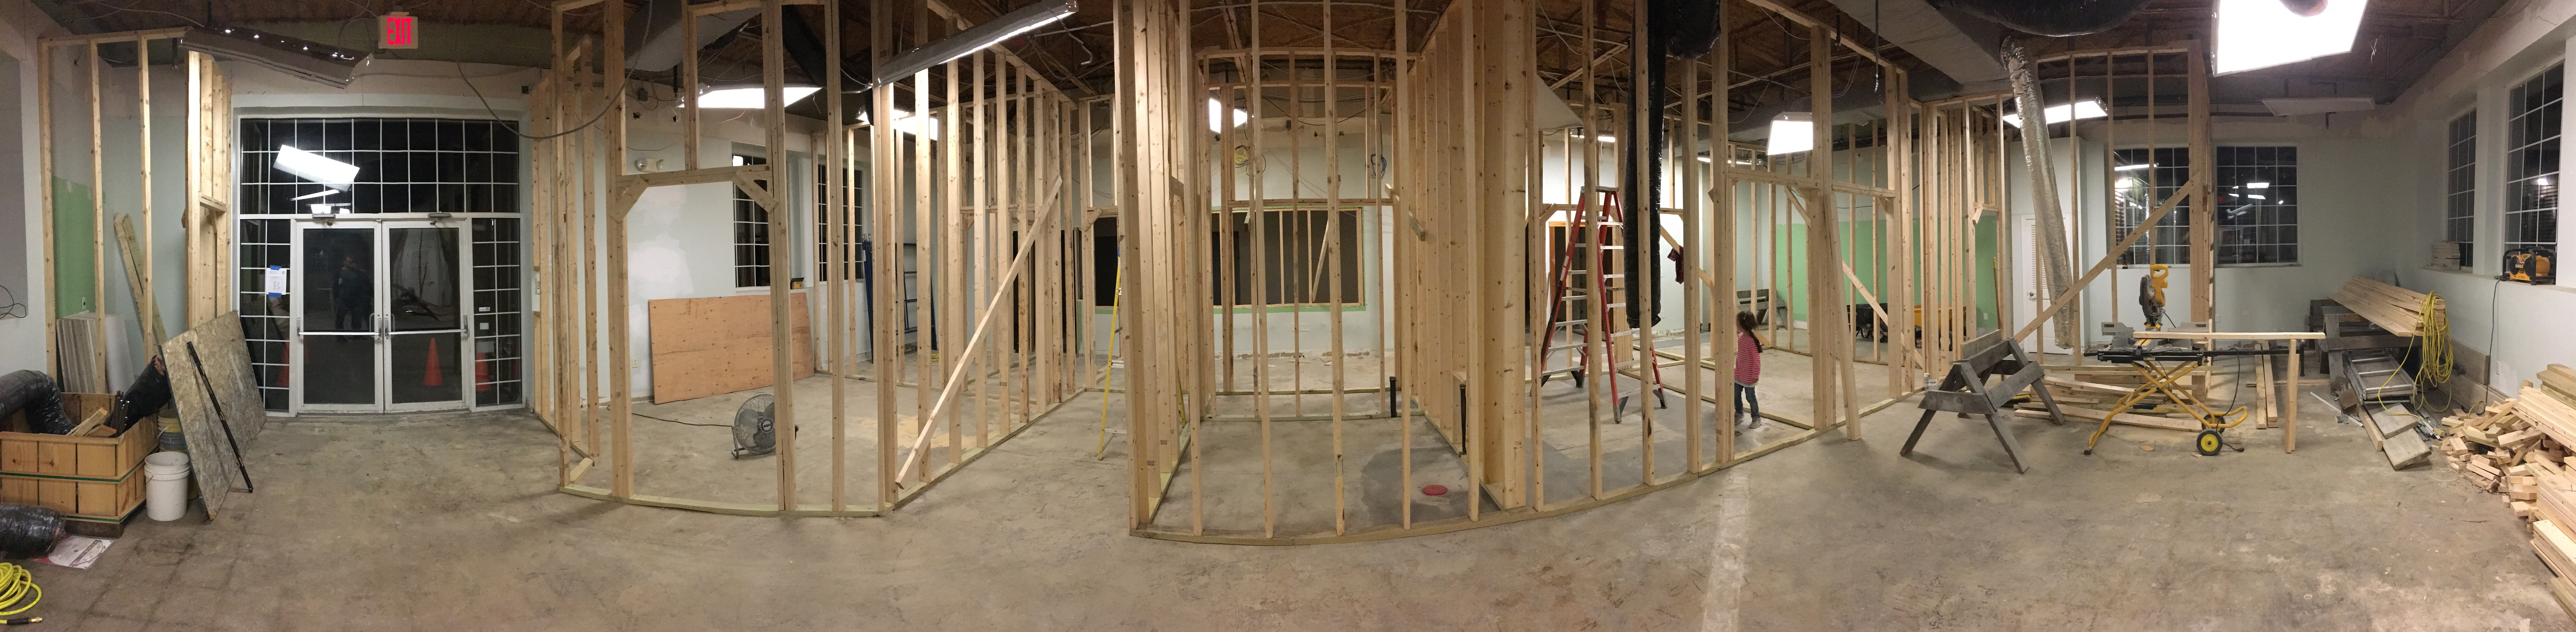 Framing progress at PMAH in Acton MA